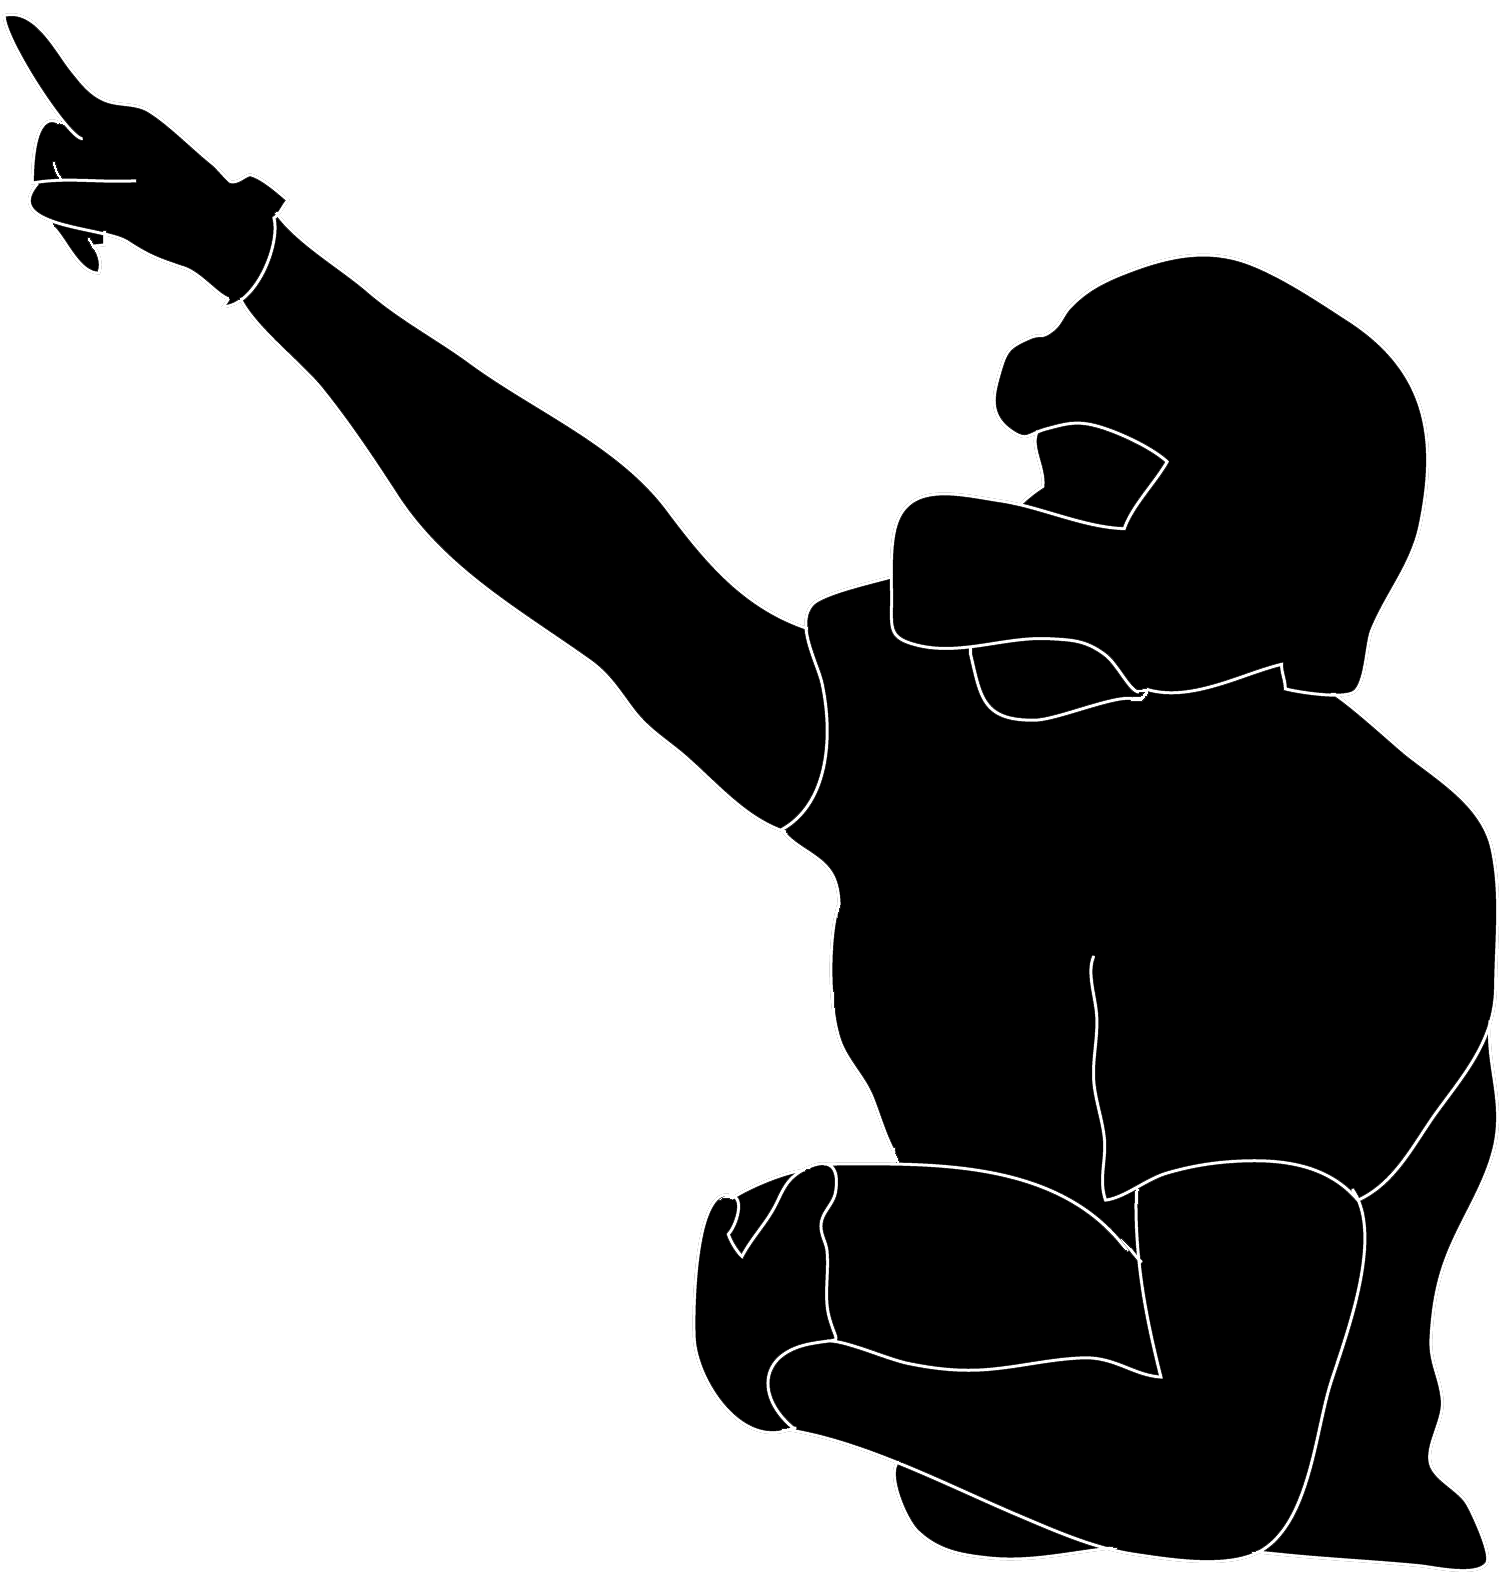 Football player kicker clipart svg free library Nfl Silhouette at GetDrawings.com | Free for personal use Nfl ... svg free library